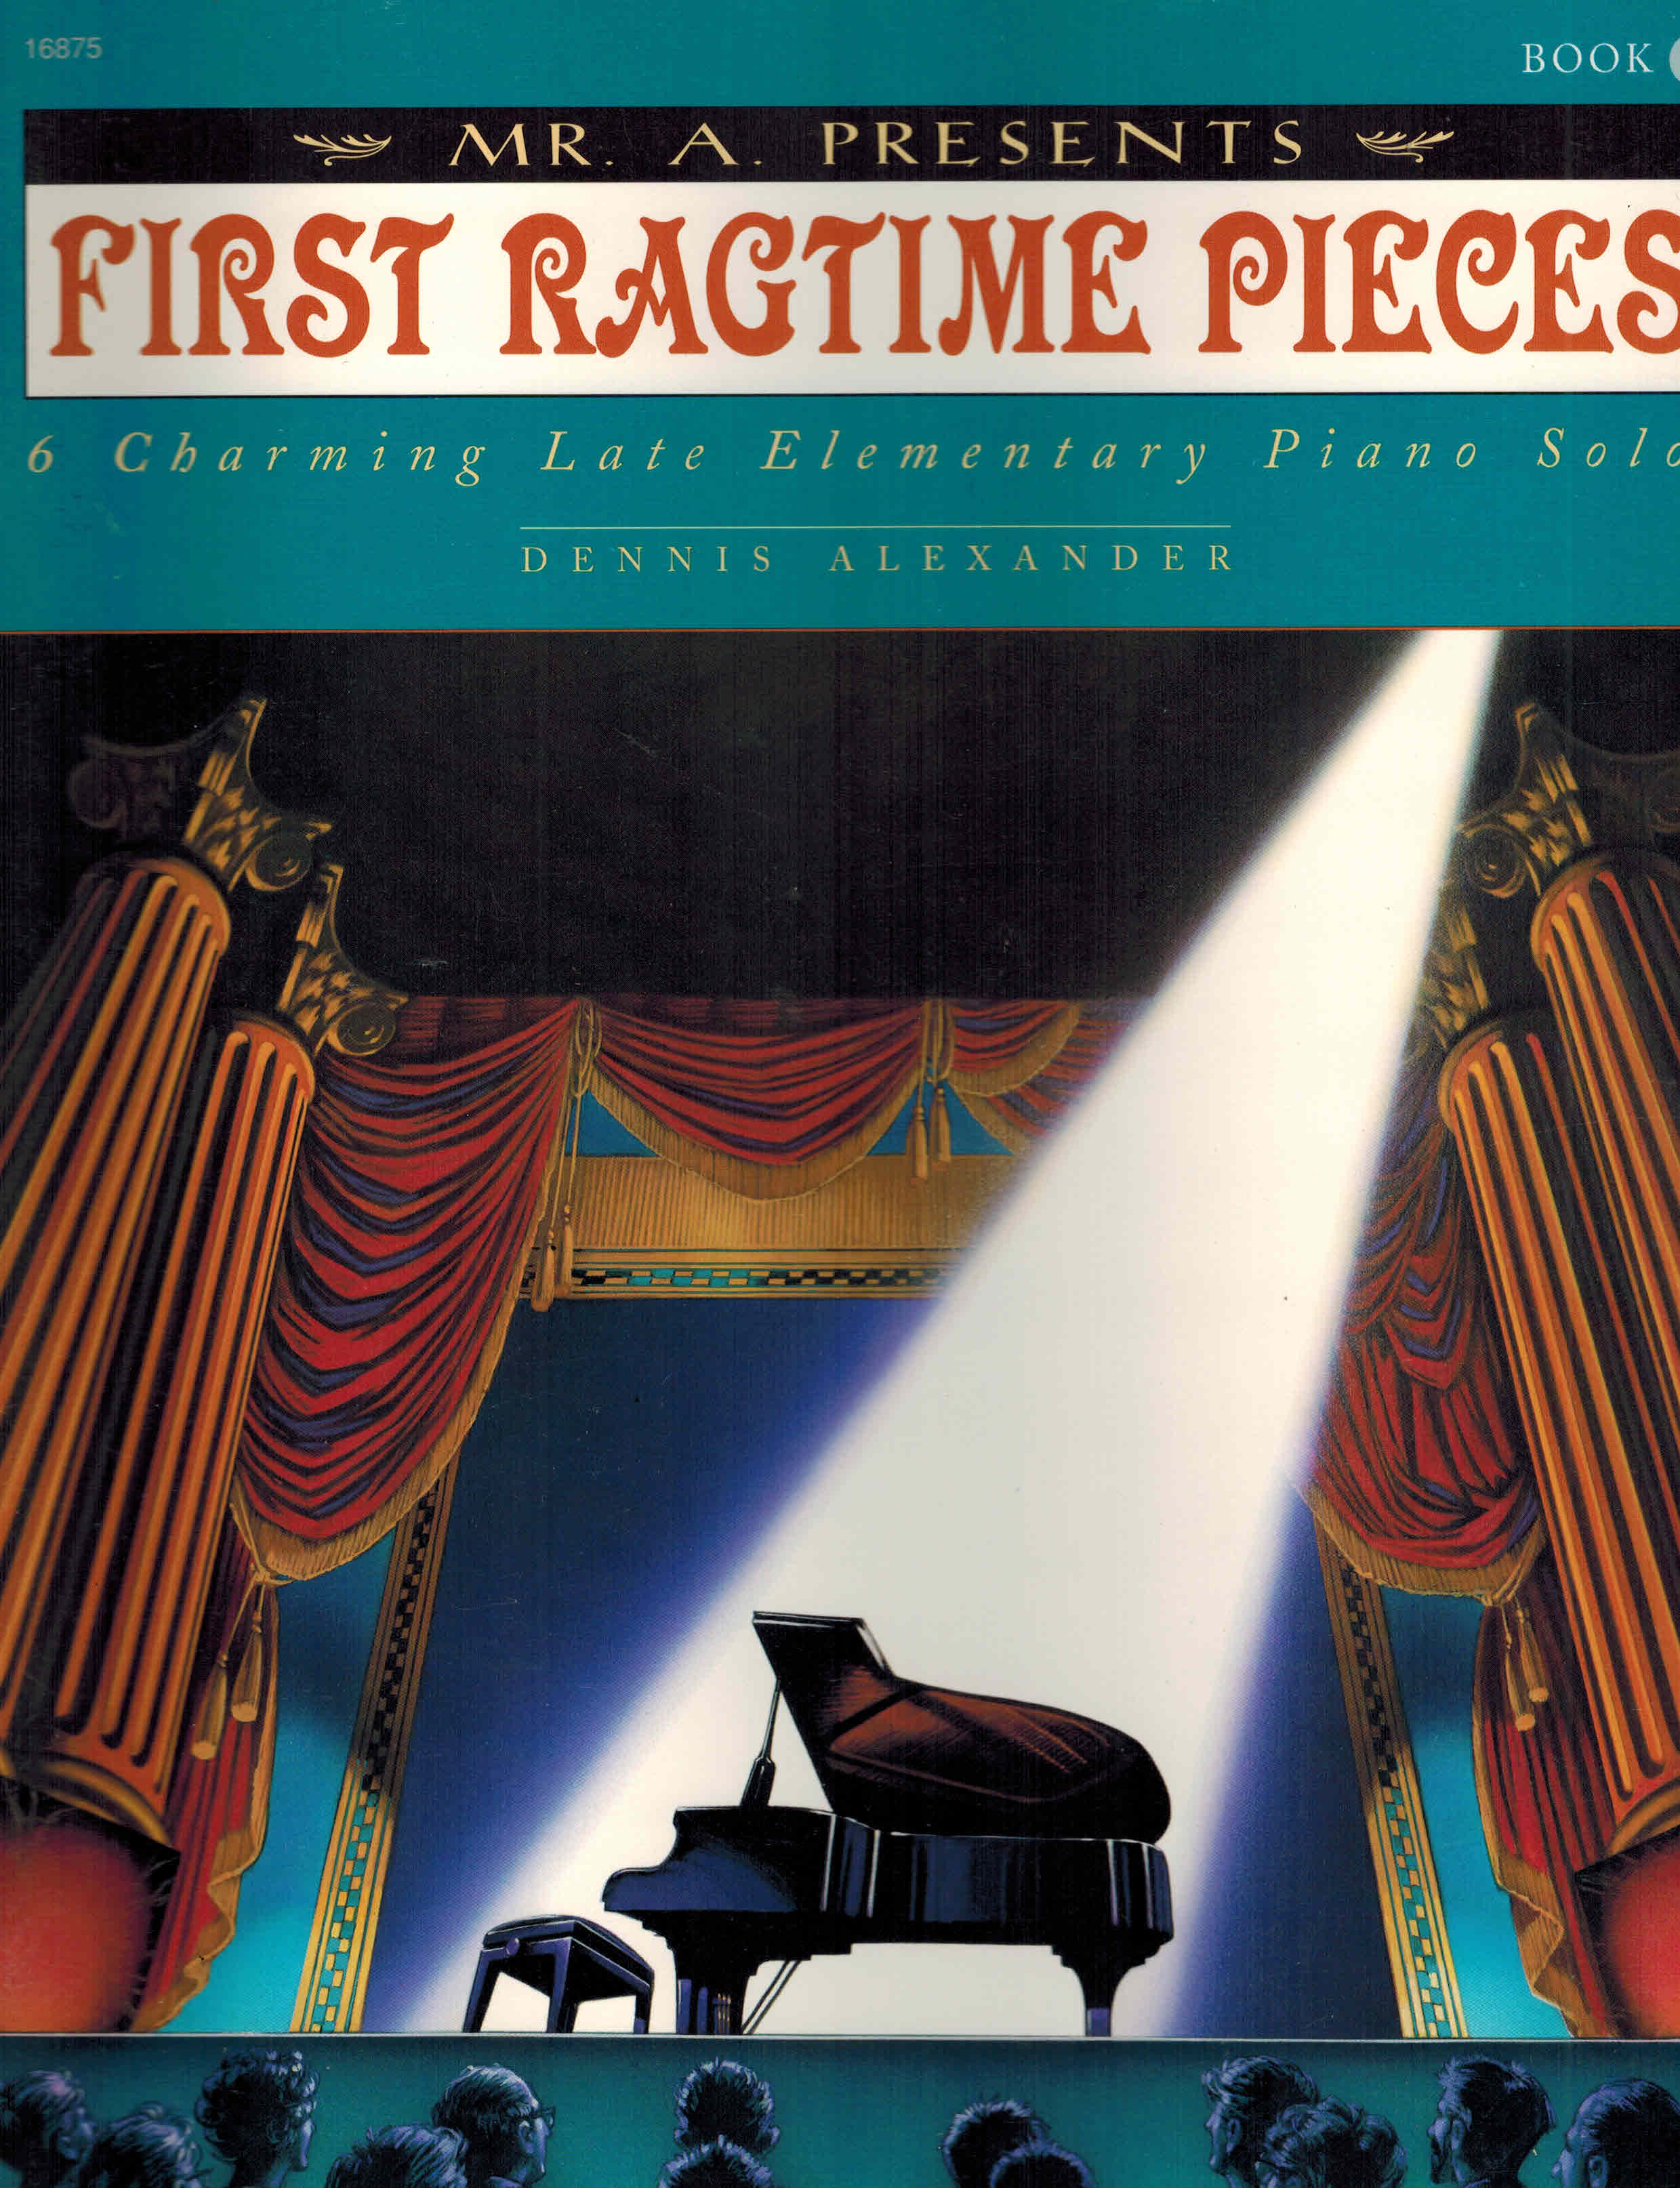 Image for Mr A Presents First Ragtime Pieces Book 1